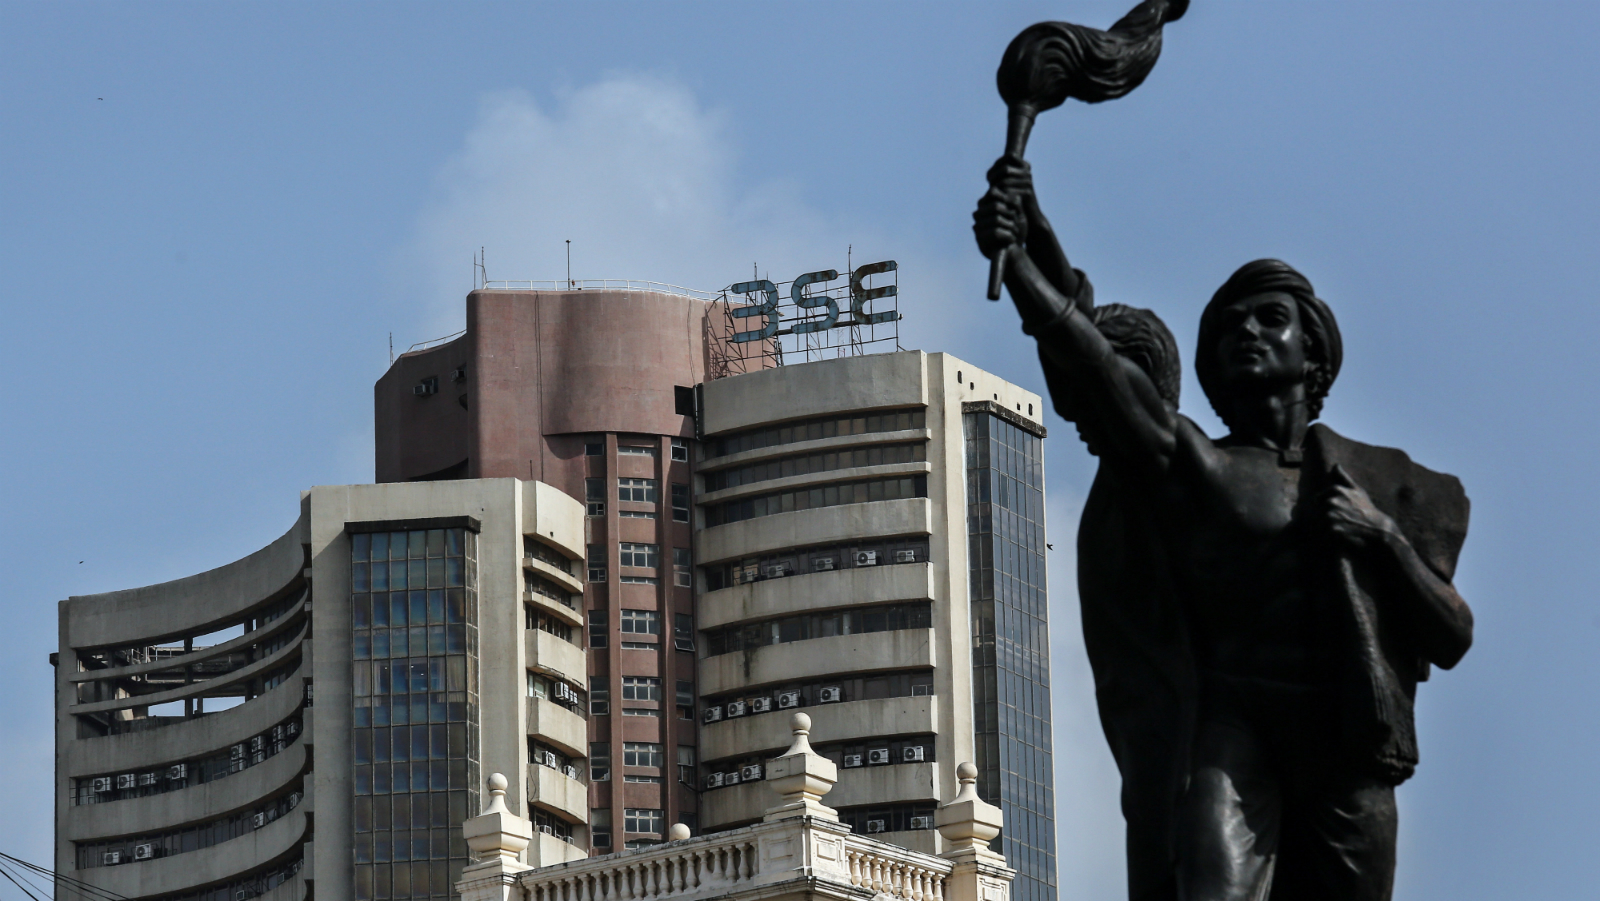 A general view of Bombay Stock Exchange (BSE) building in Mumbai, India, 02 September 2015. The Bombay Sensex Stock Exchange opened 25,891.95 points, trading at 25,476.95 points during the day, dropping by 219.49 points from the previous day's close.